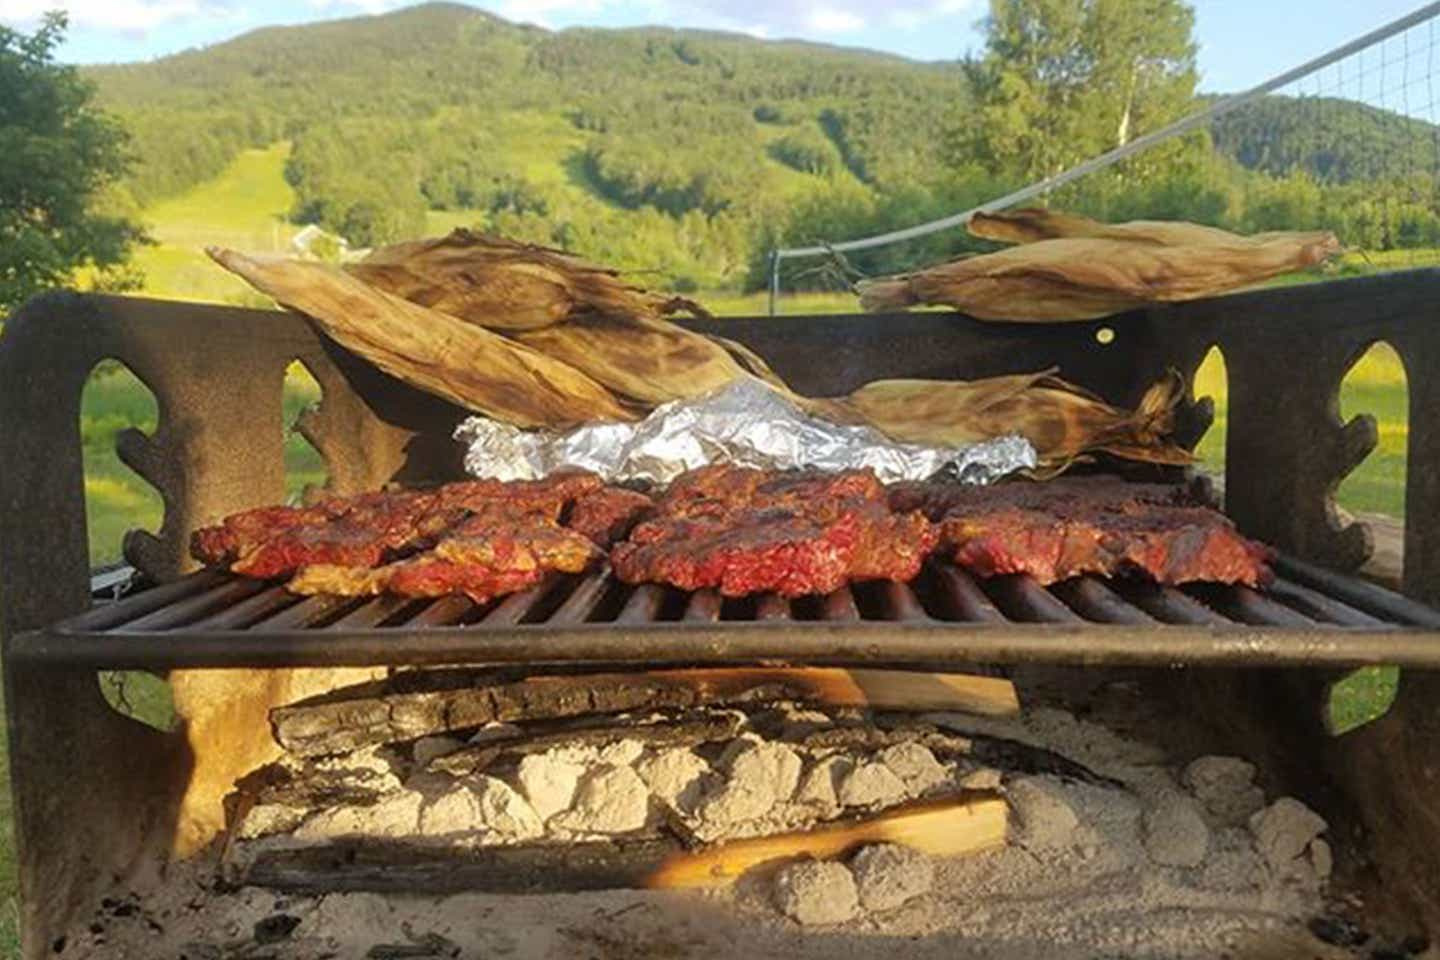 An exterior grill with different delectable meats.